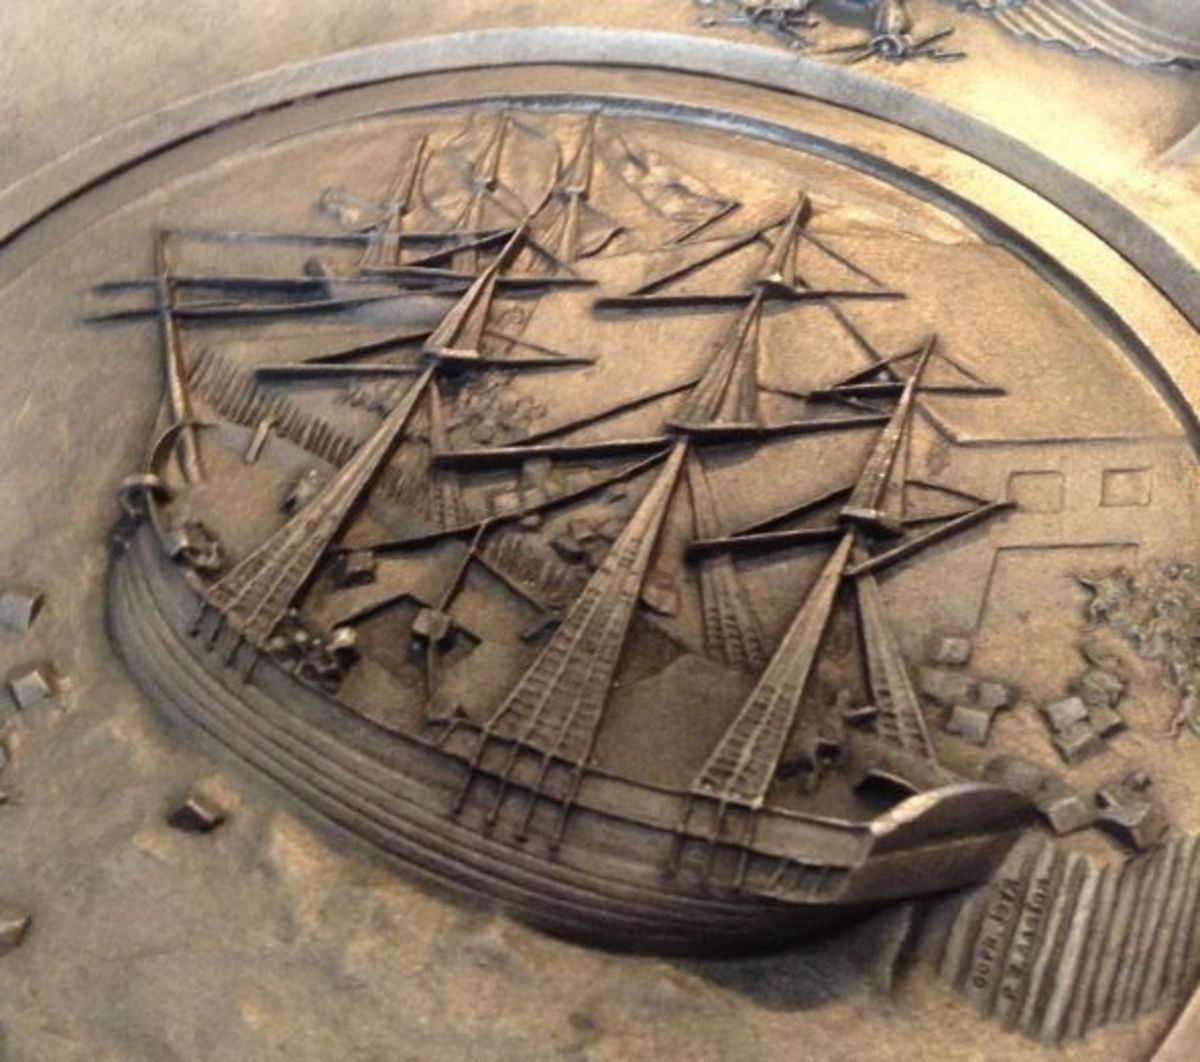 Close up of Boston Tea Party plate